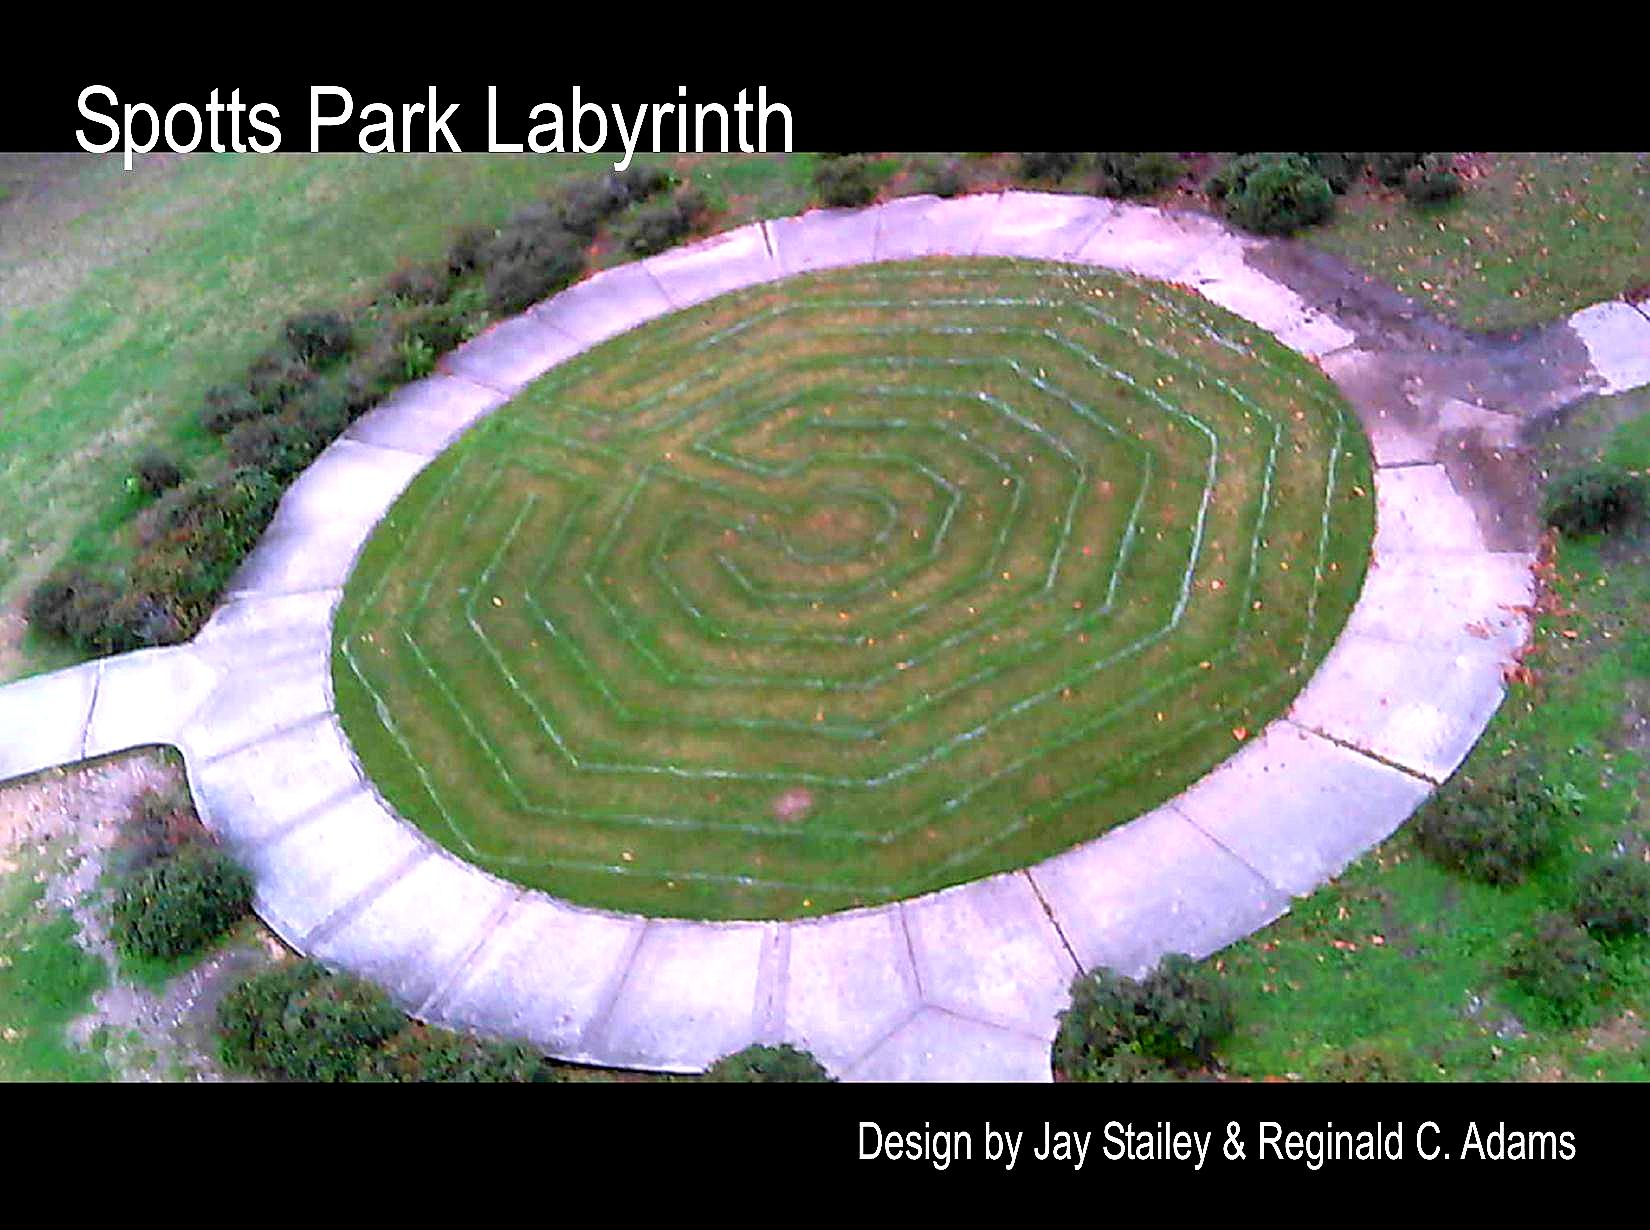 Spotts Park Labyrinth